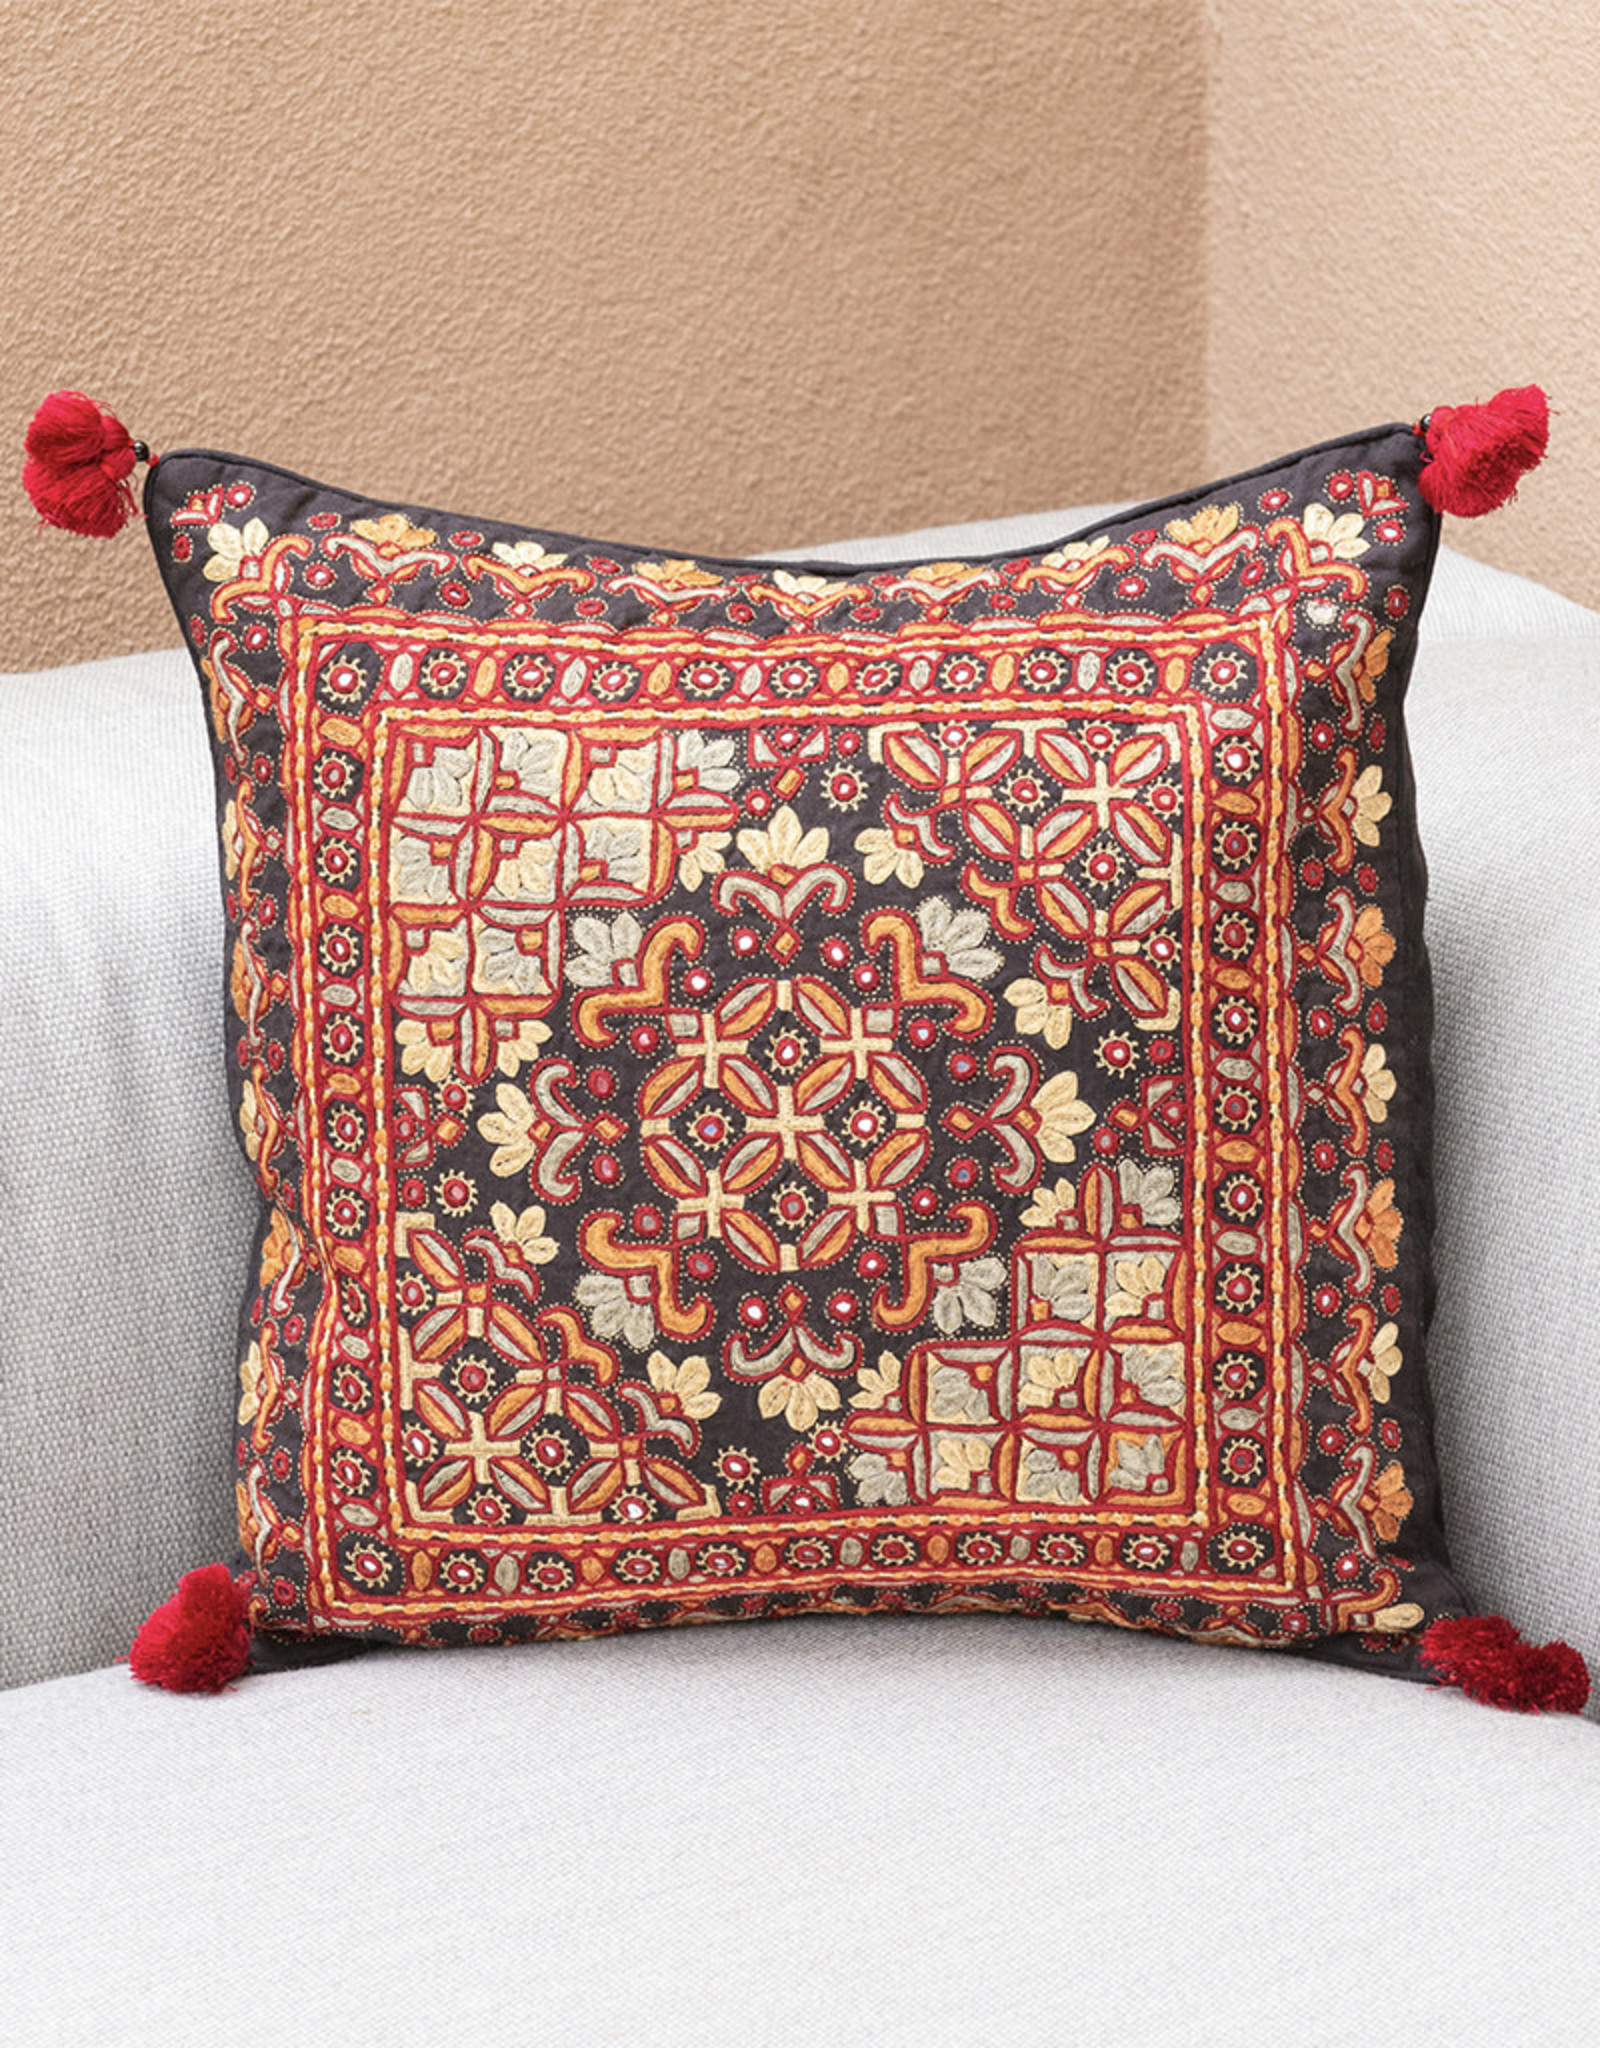 Shisha Four Red Suns Pillow